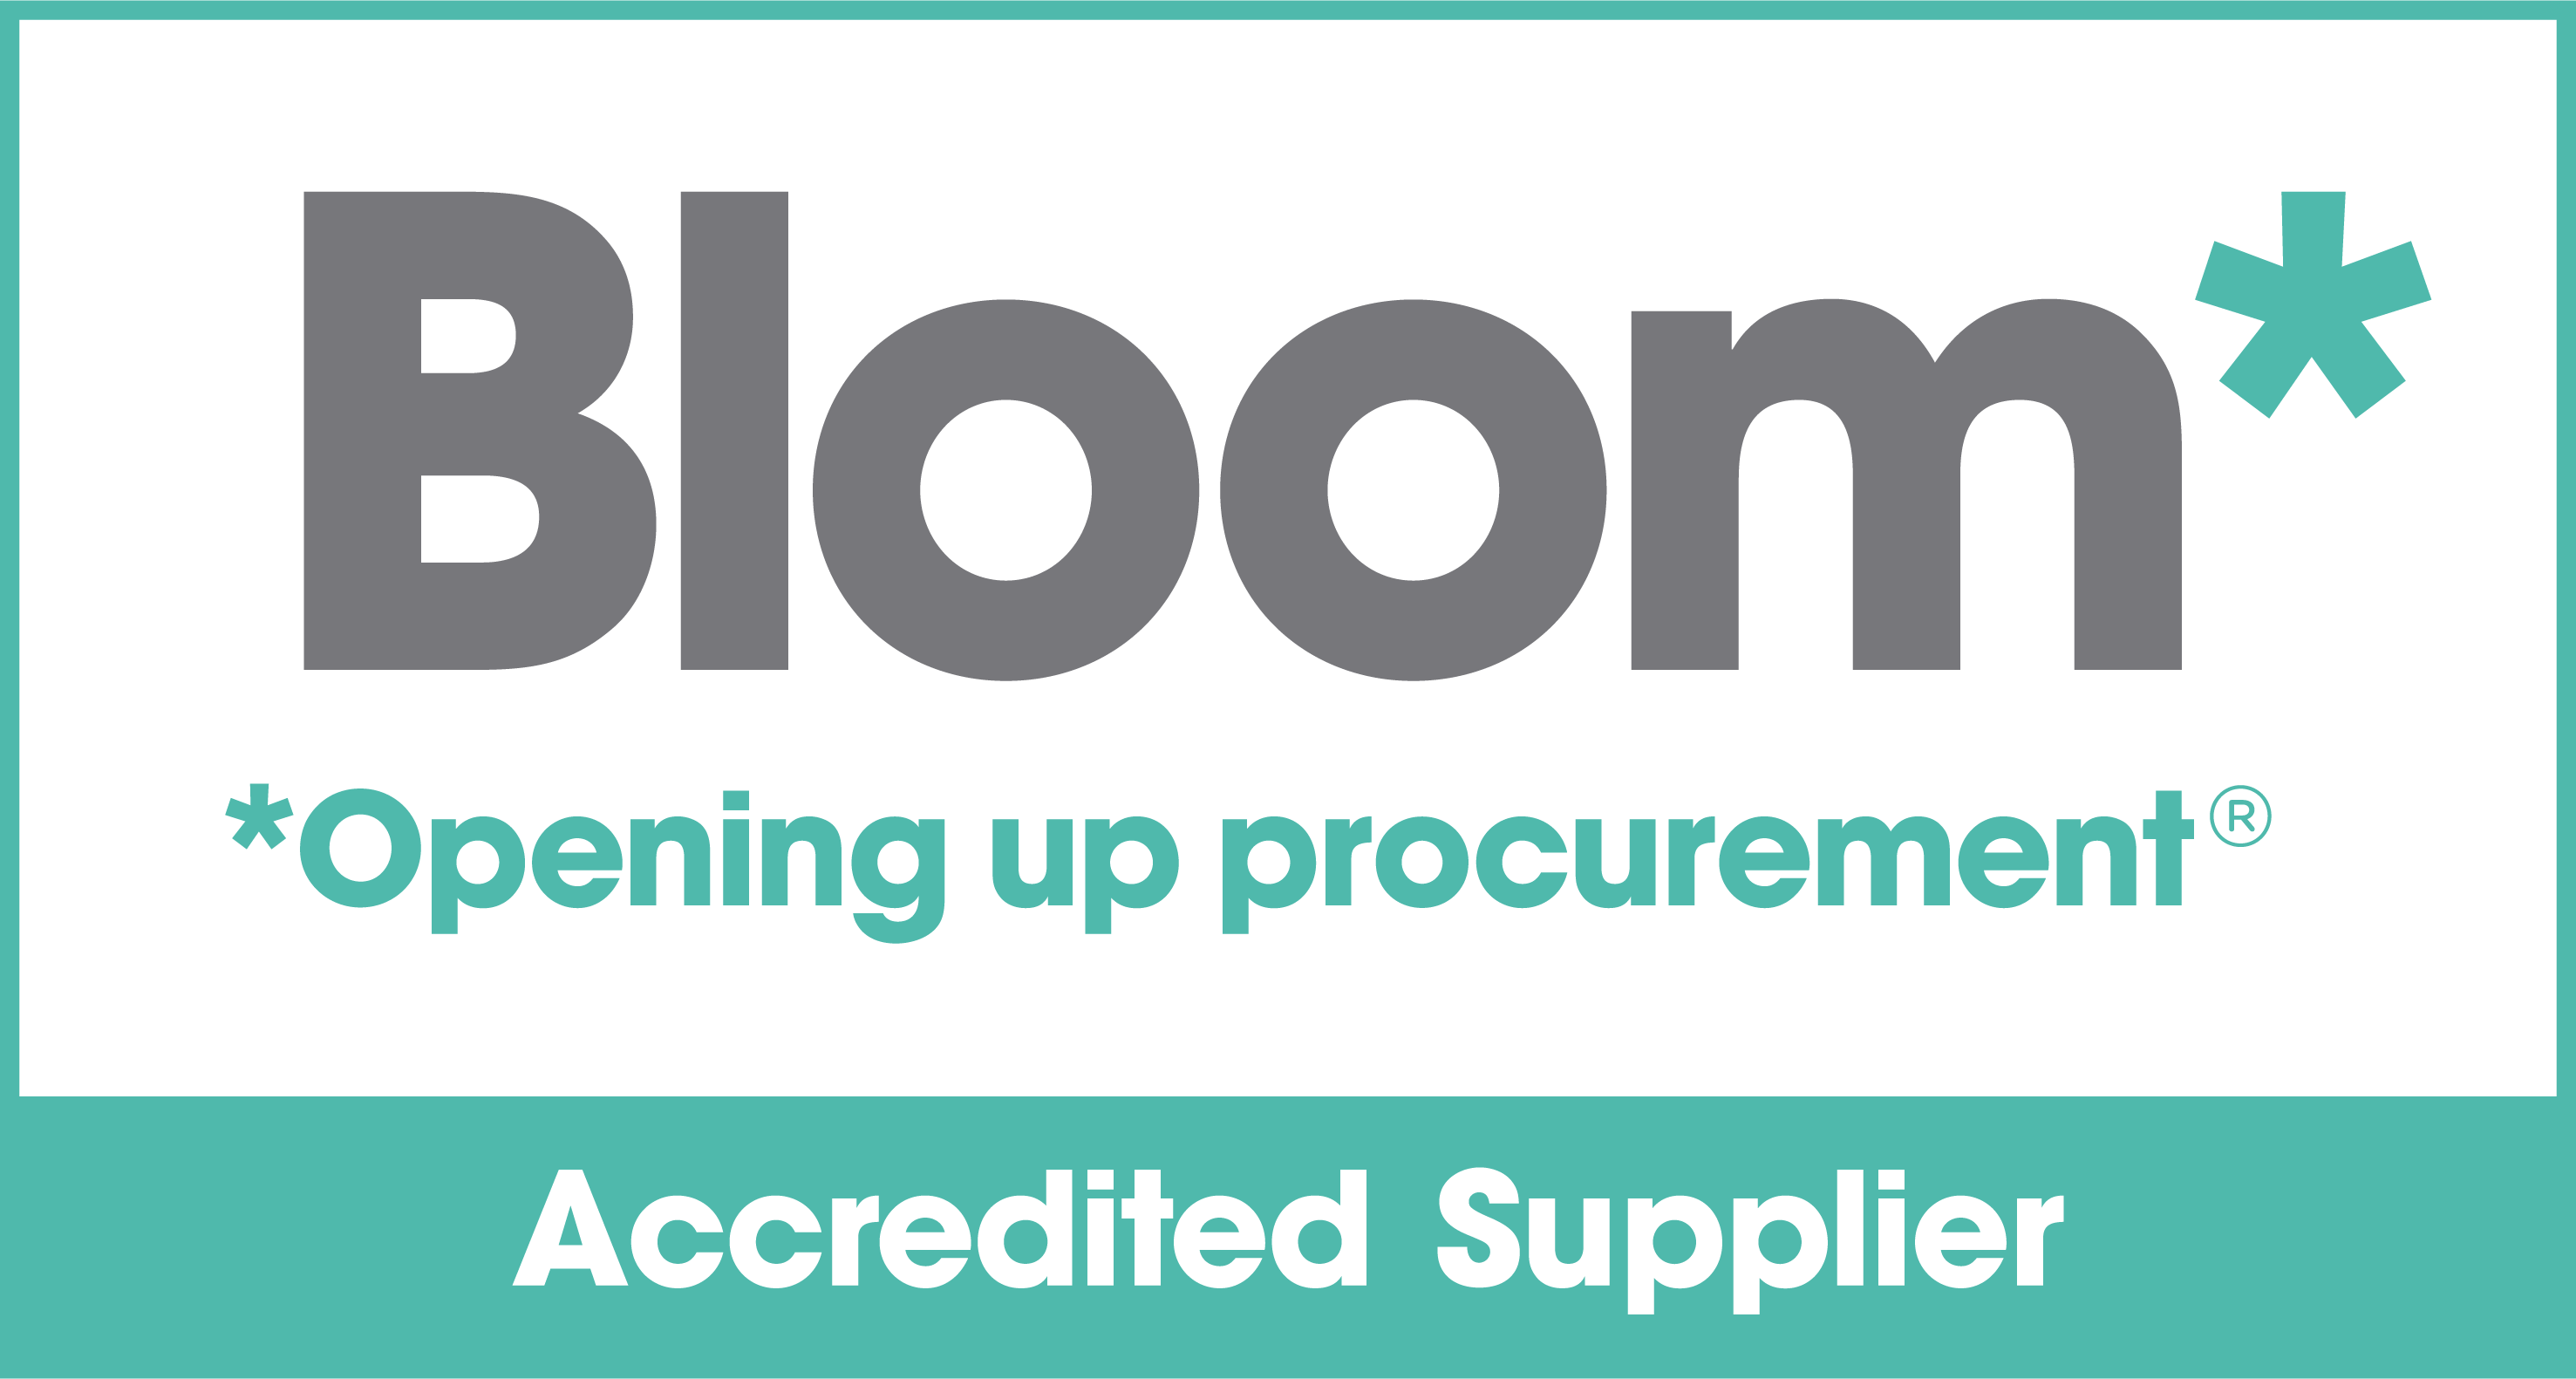 Results Department is an accredited Bloom supplier.